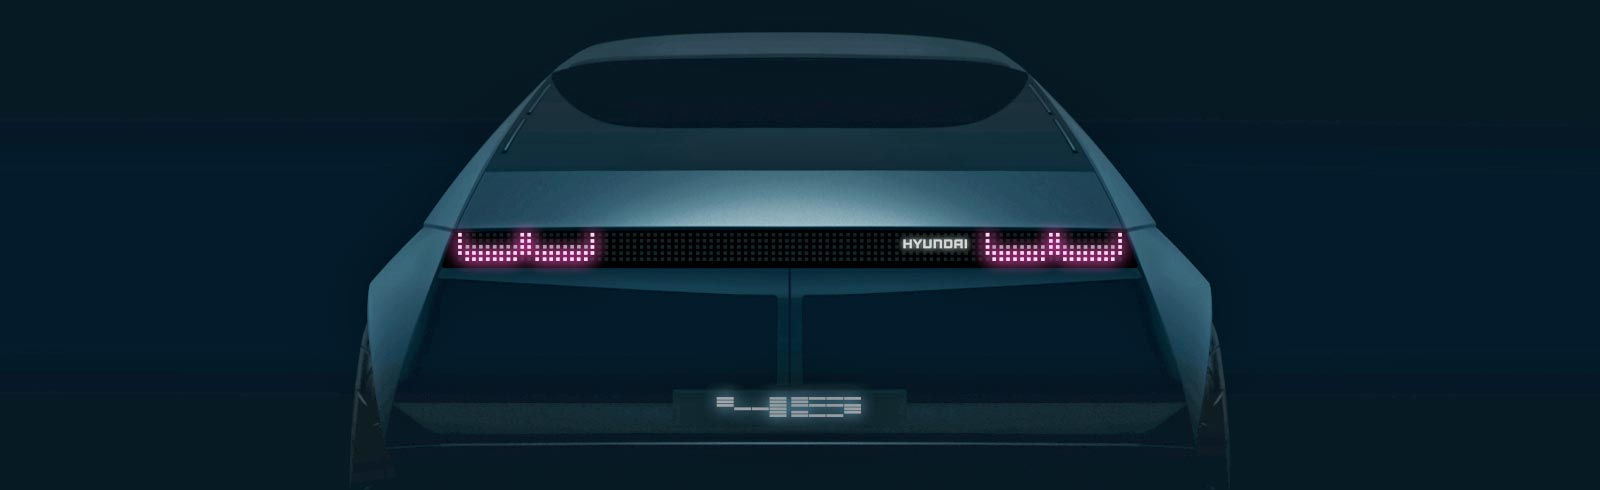 Hyundai teases the new 45 EV concept car prior to its IAA unveiling in Frankfurt